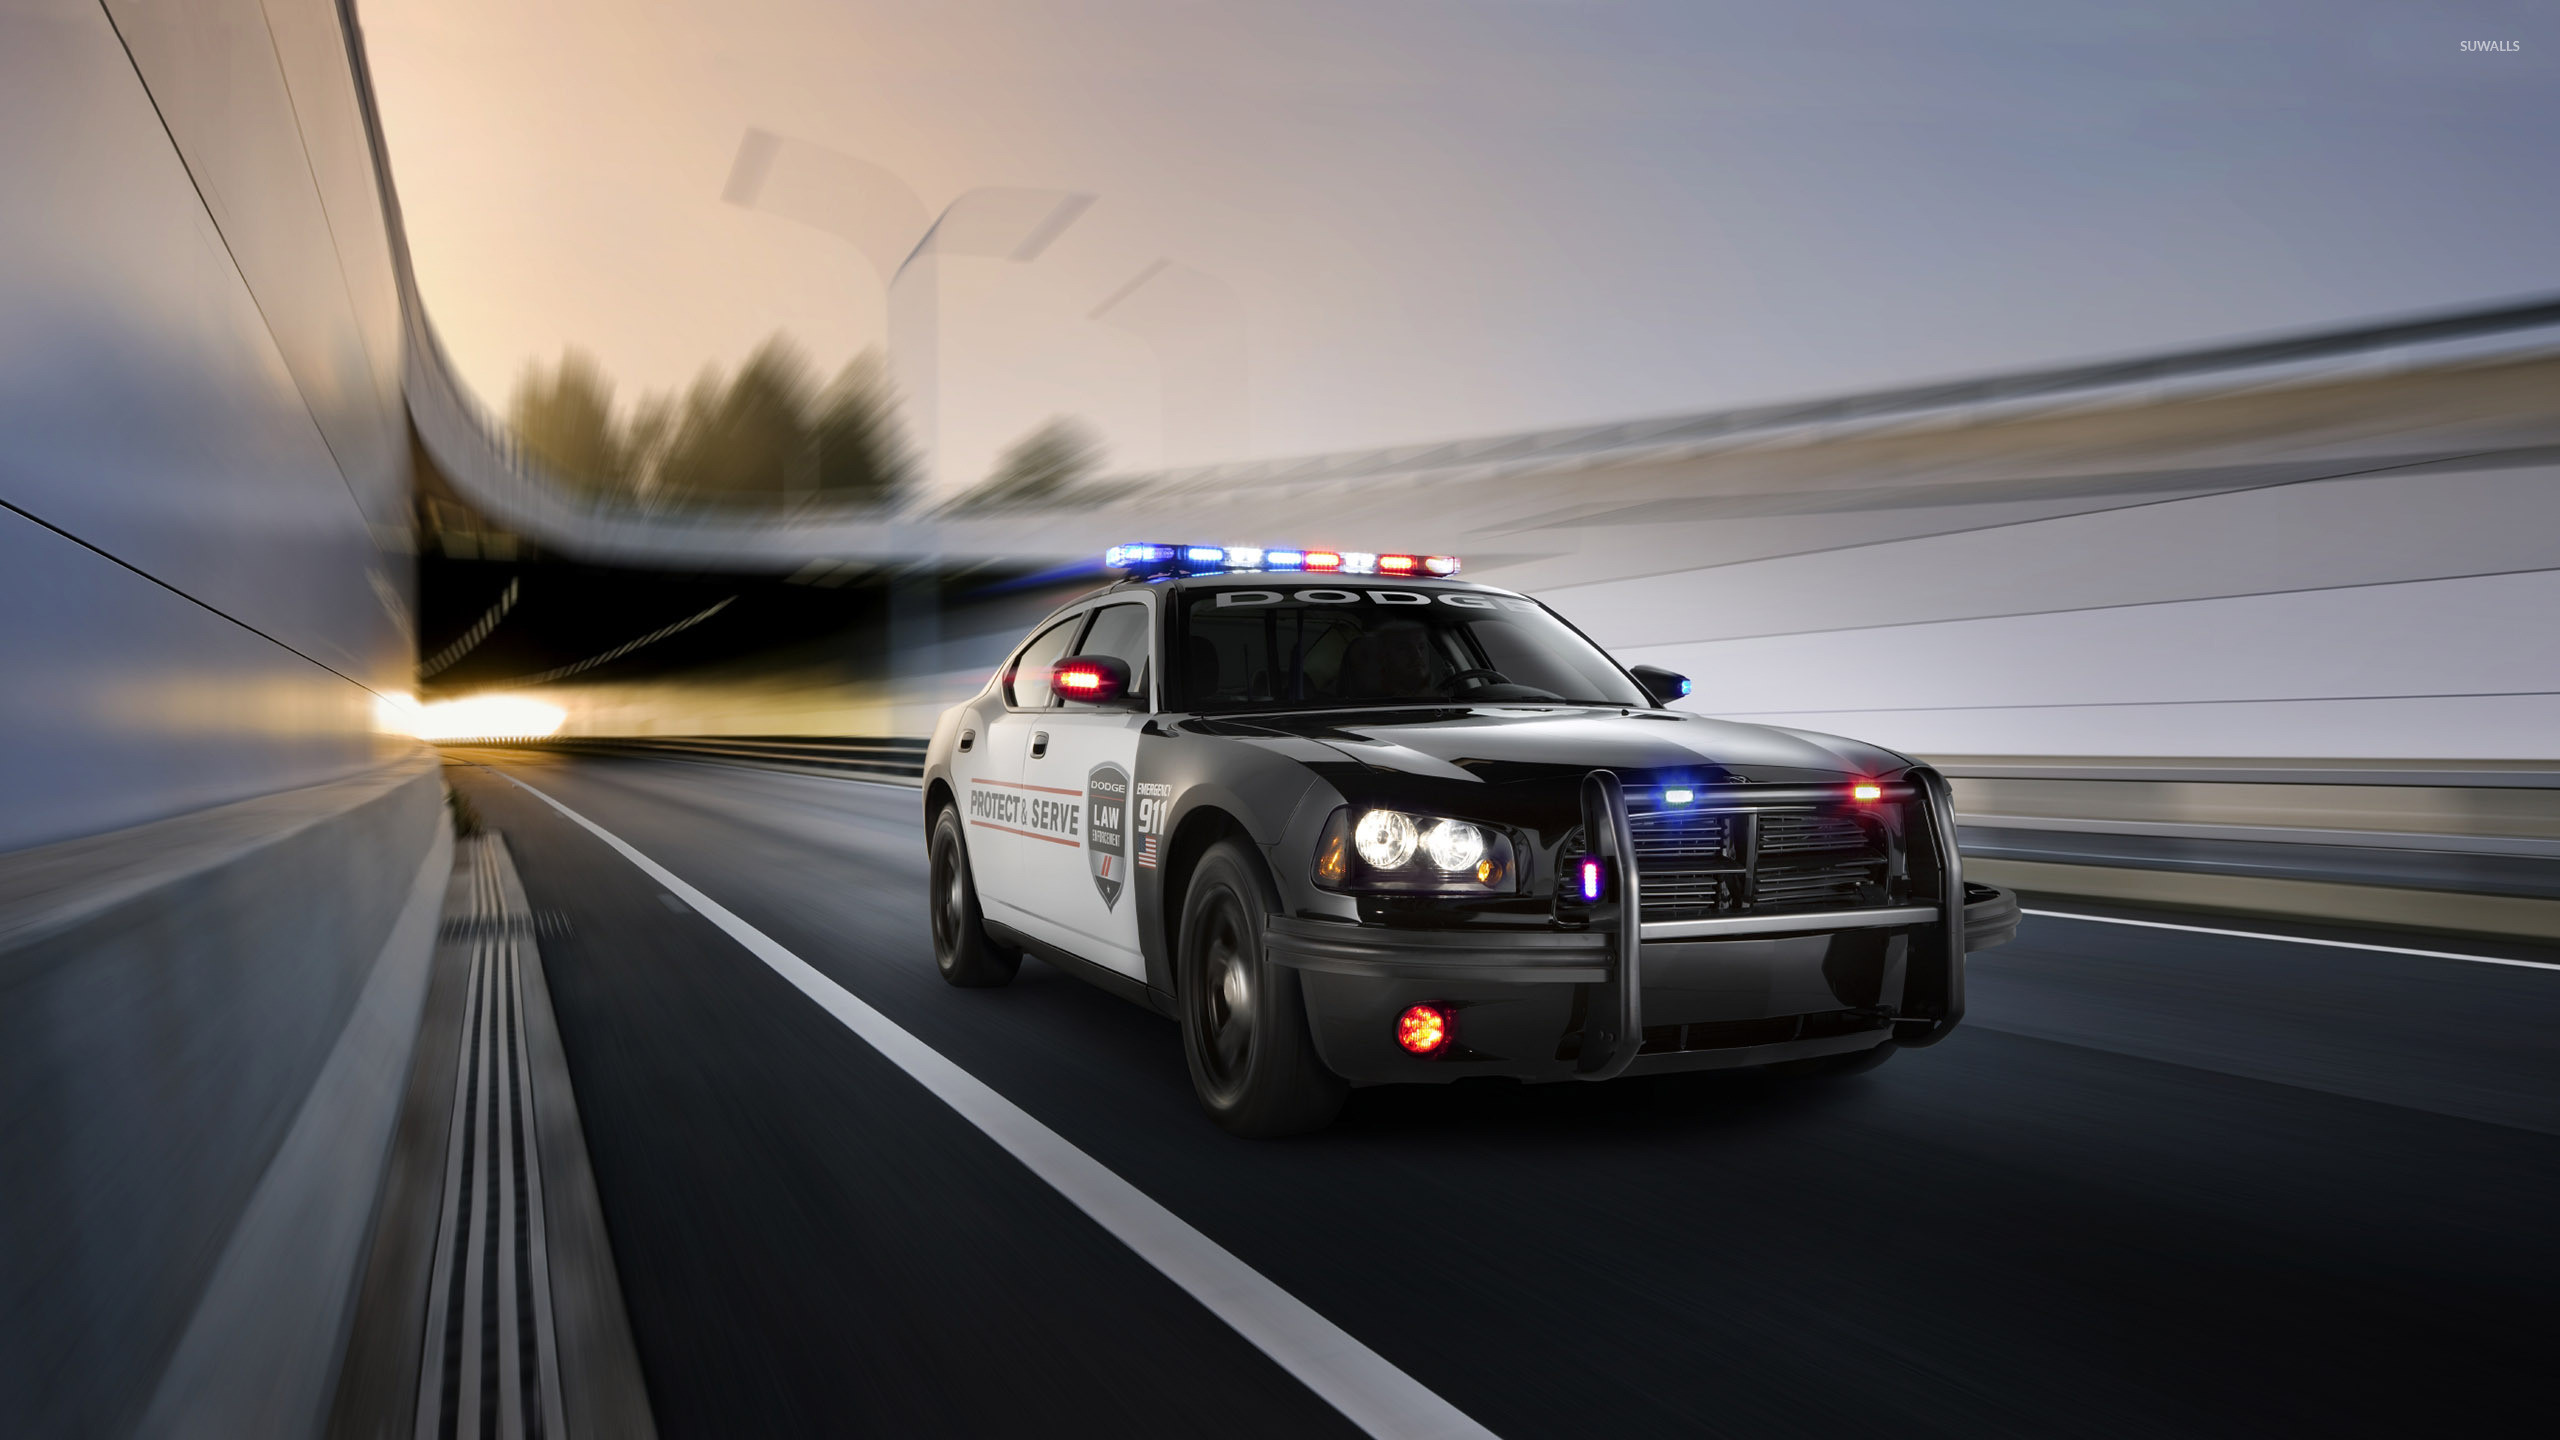 Res: 2560x1440, Police Car Wallpaper Hd Resolution